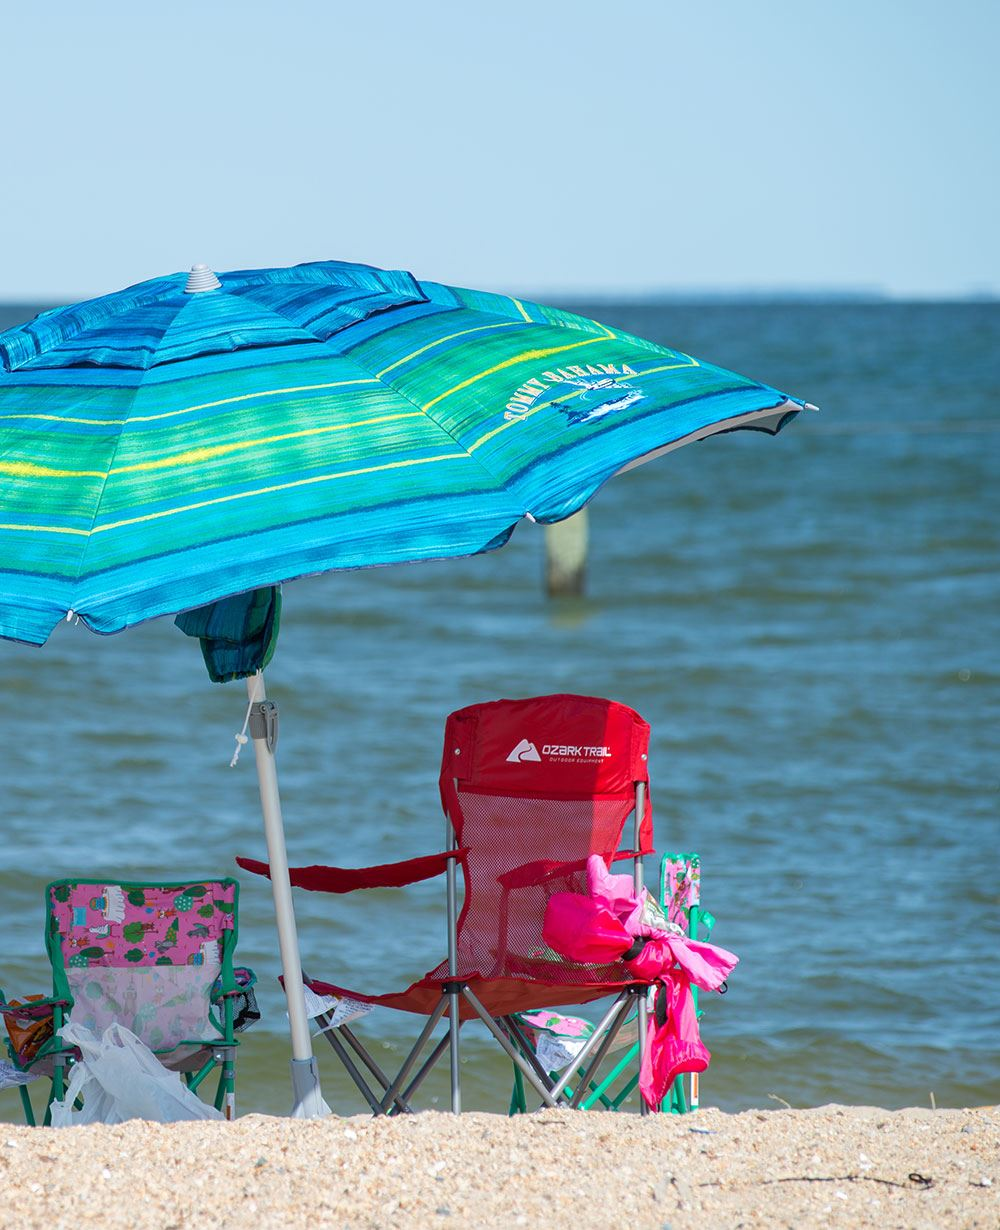 Chairs at Breezy Point Beach